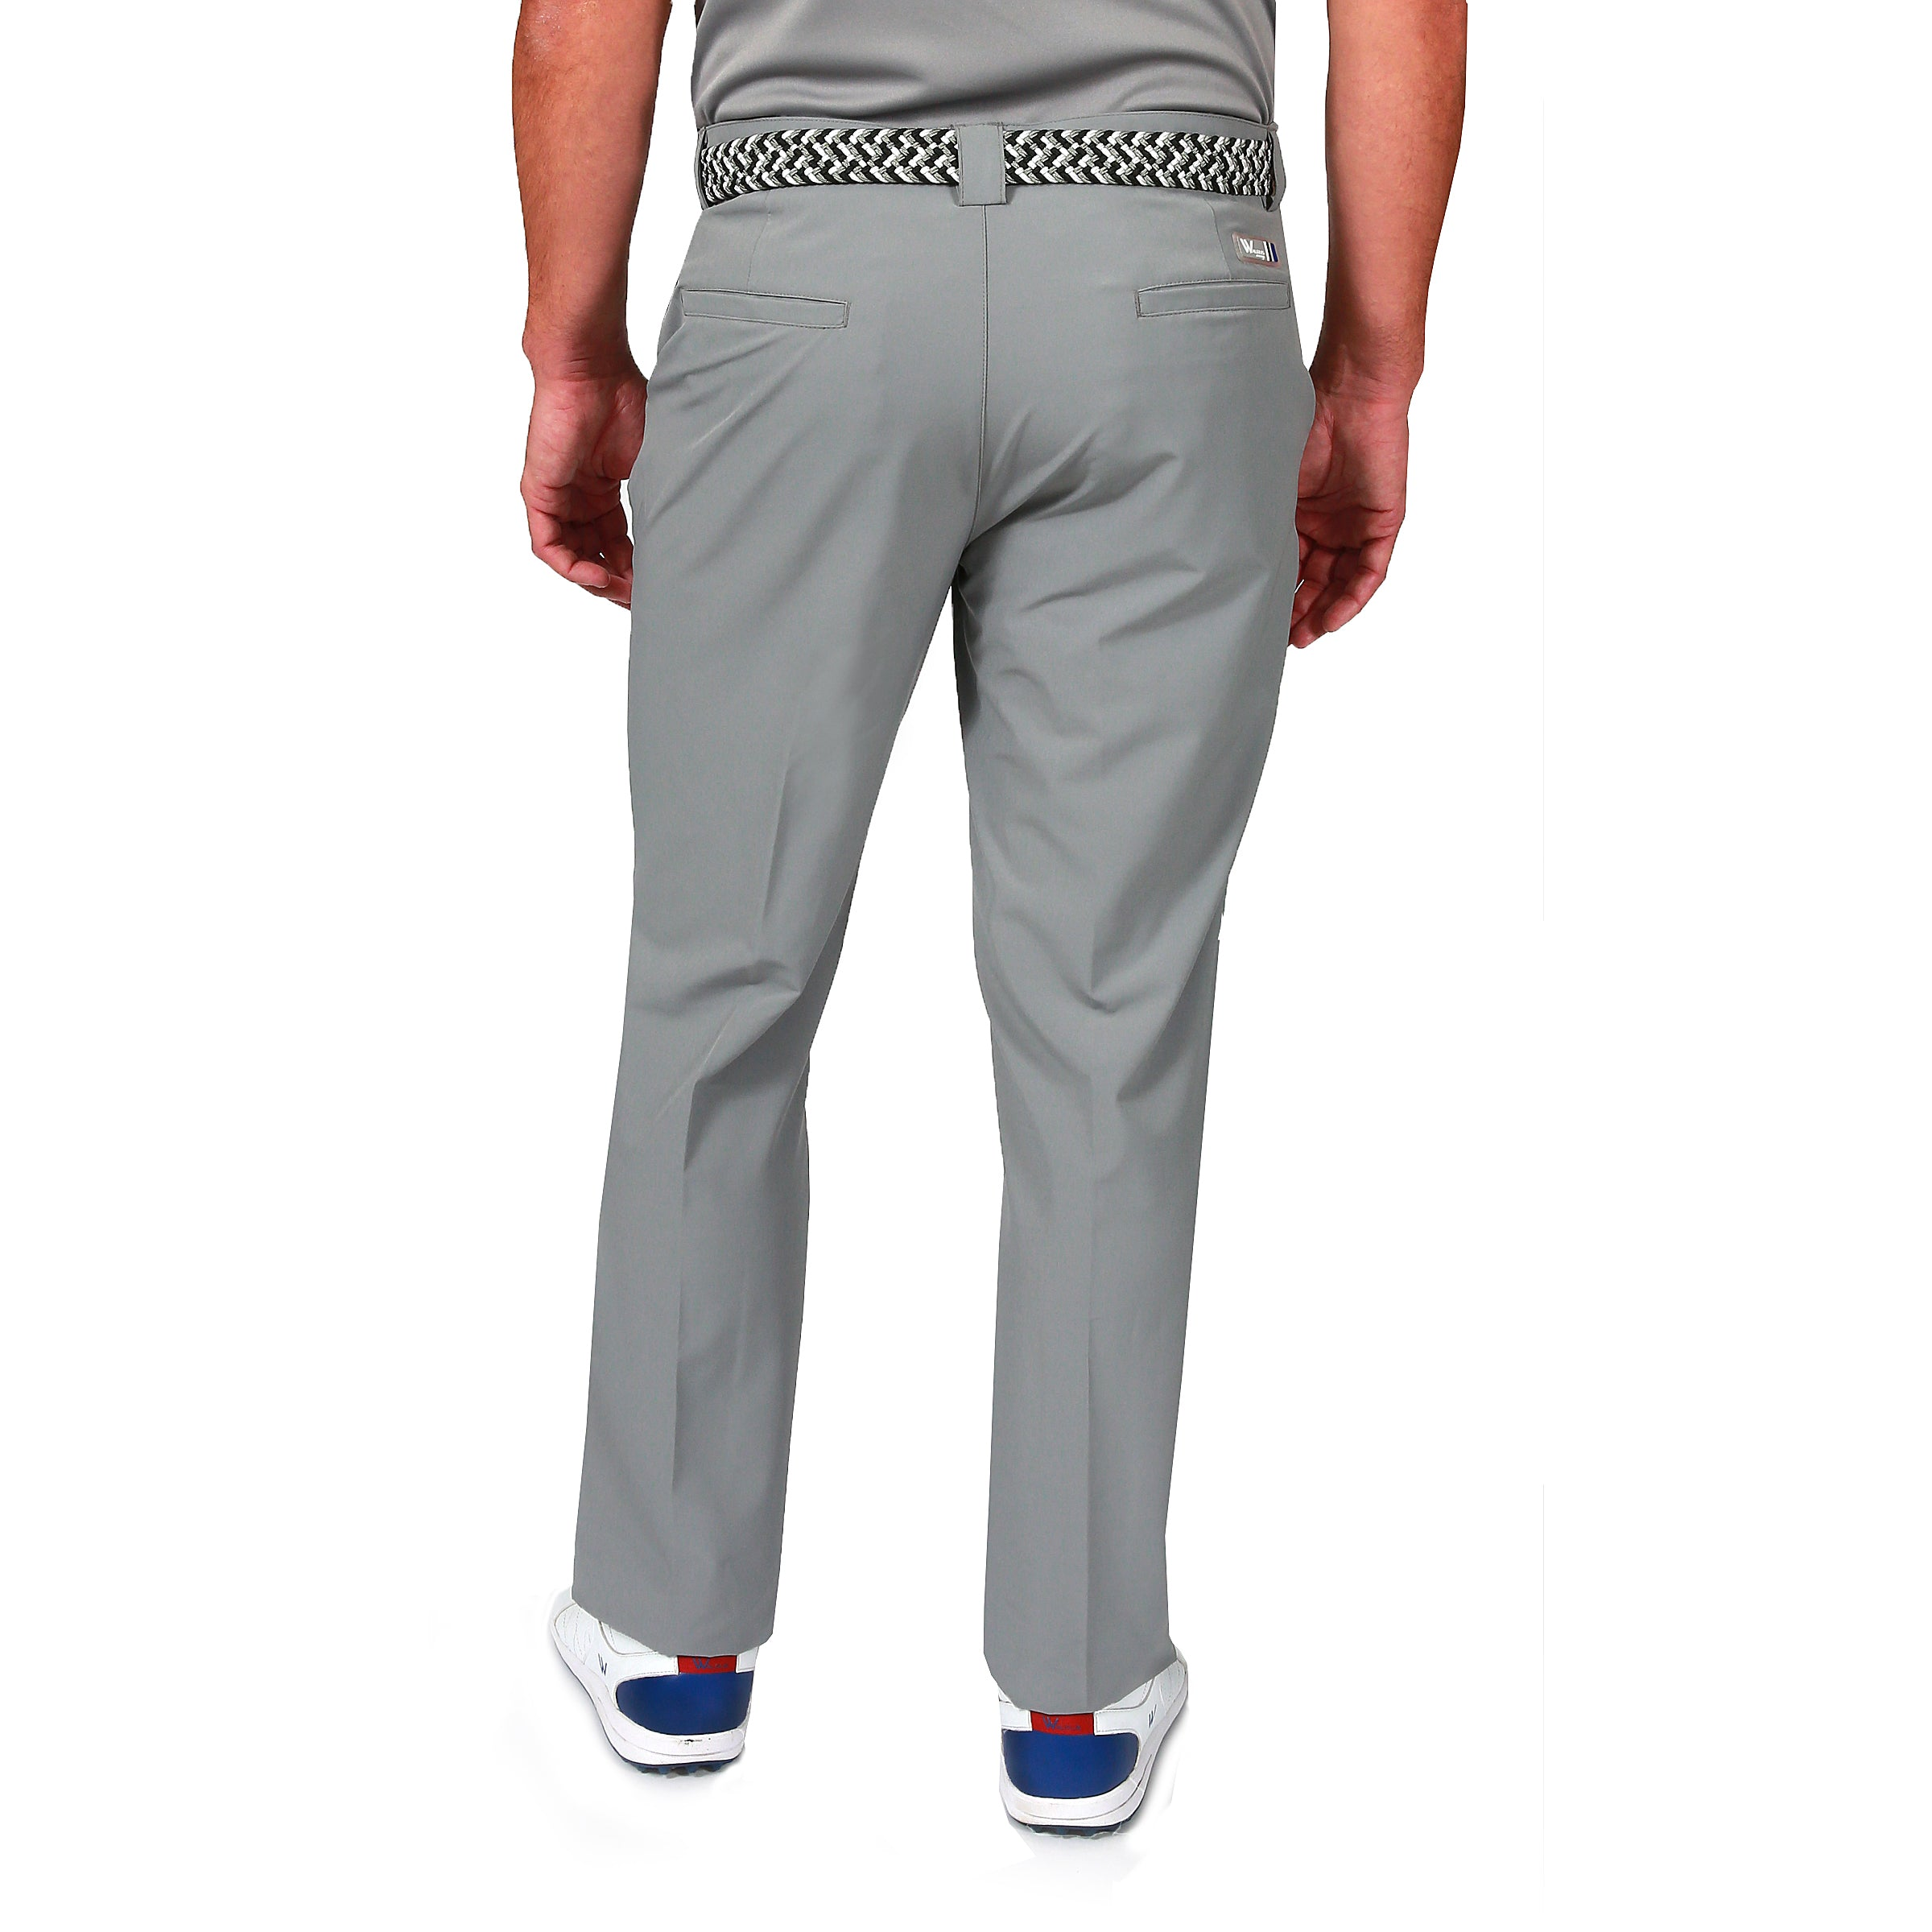 Ivan Water Repellent Golf Trousers - Neutral Grey by  Walrus Apparel